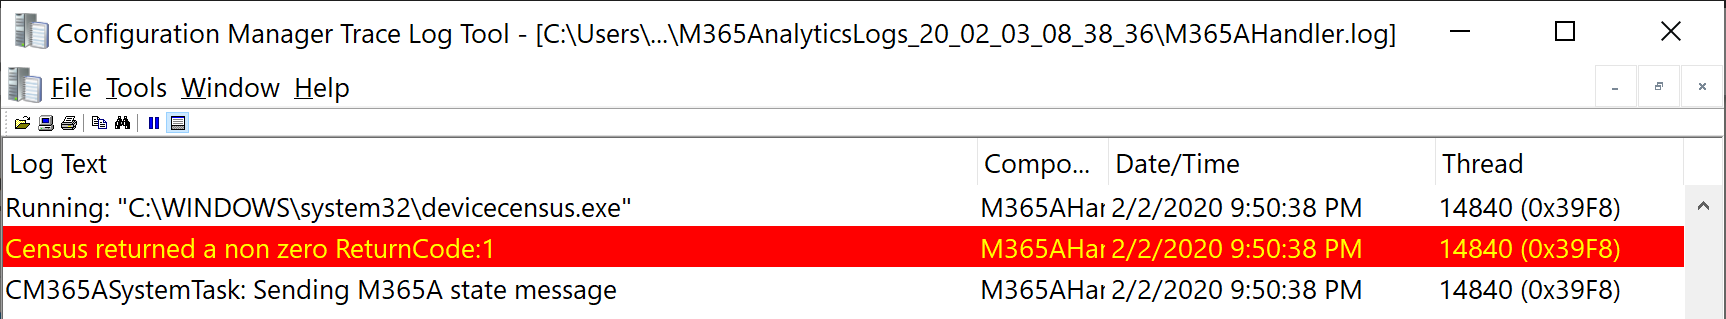 M365AHandler.log error